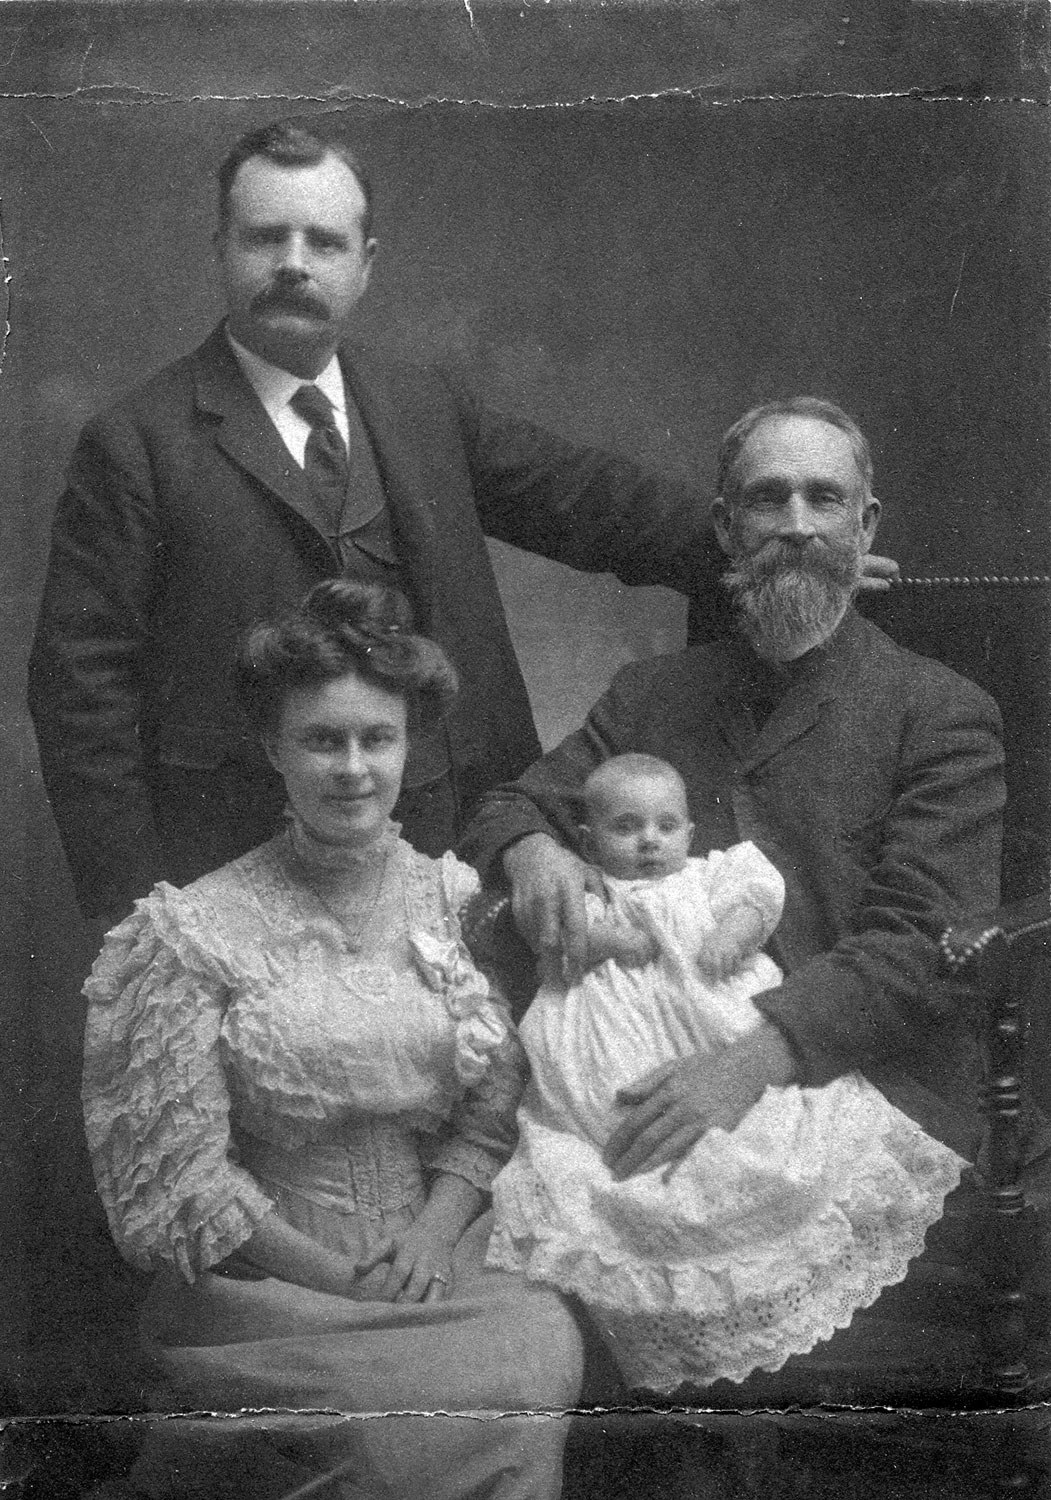 Four generations of the Williamson family